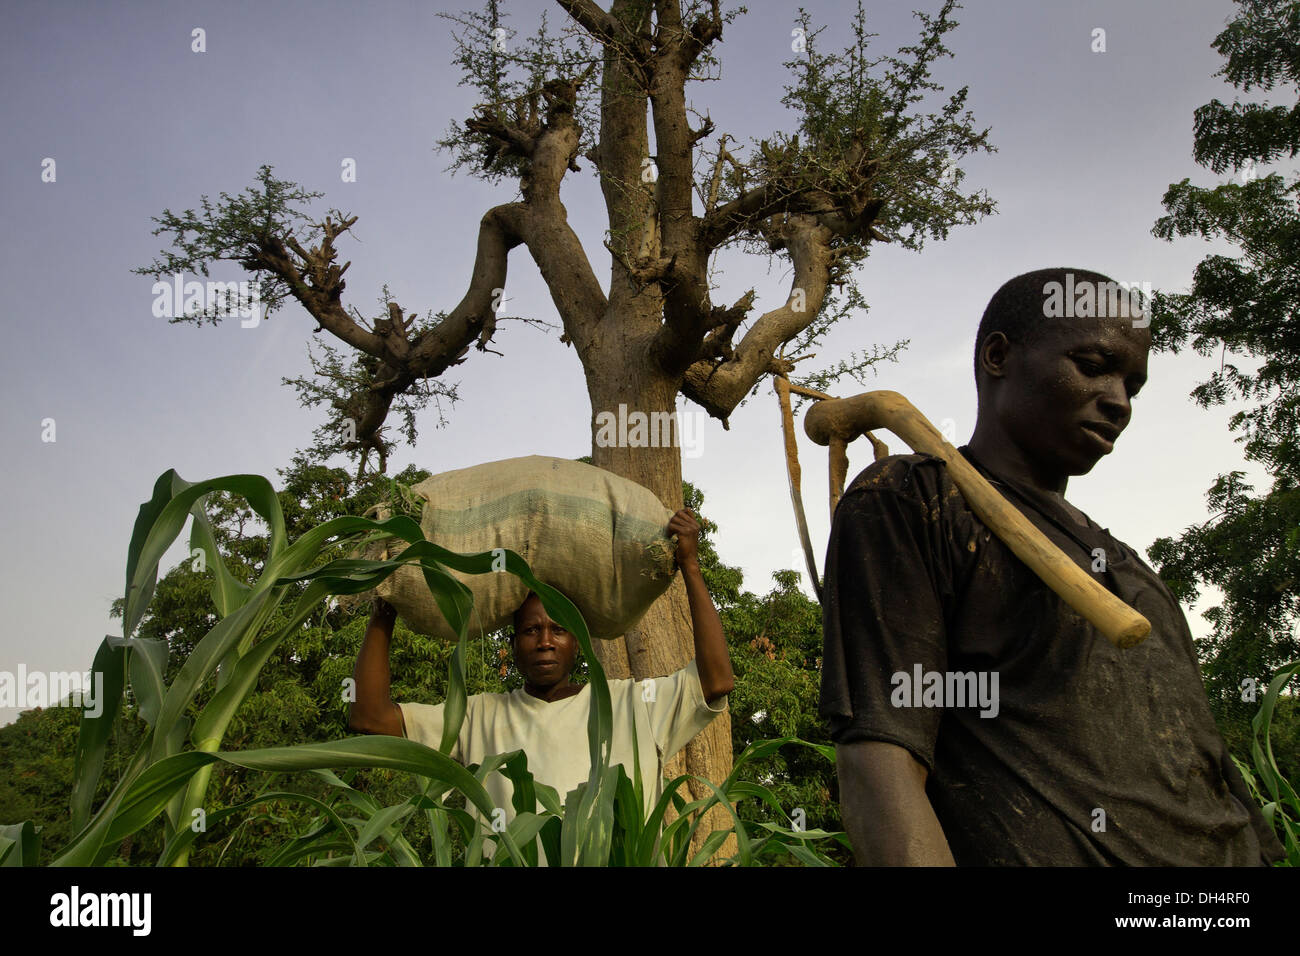 Nitrogen fixing Faidherbia albida tree in Kano, Nigeria - Stock Image